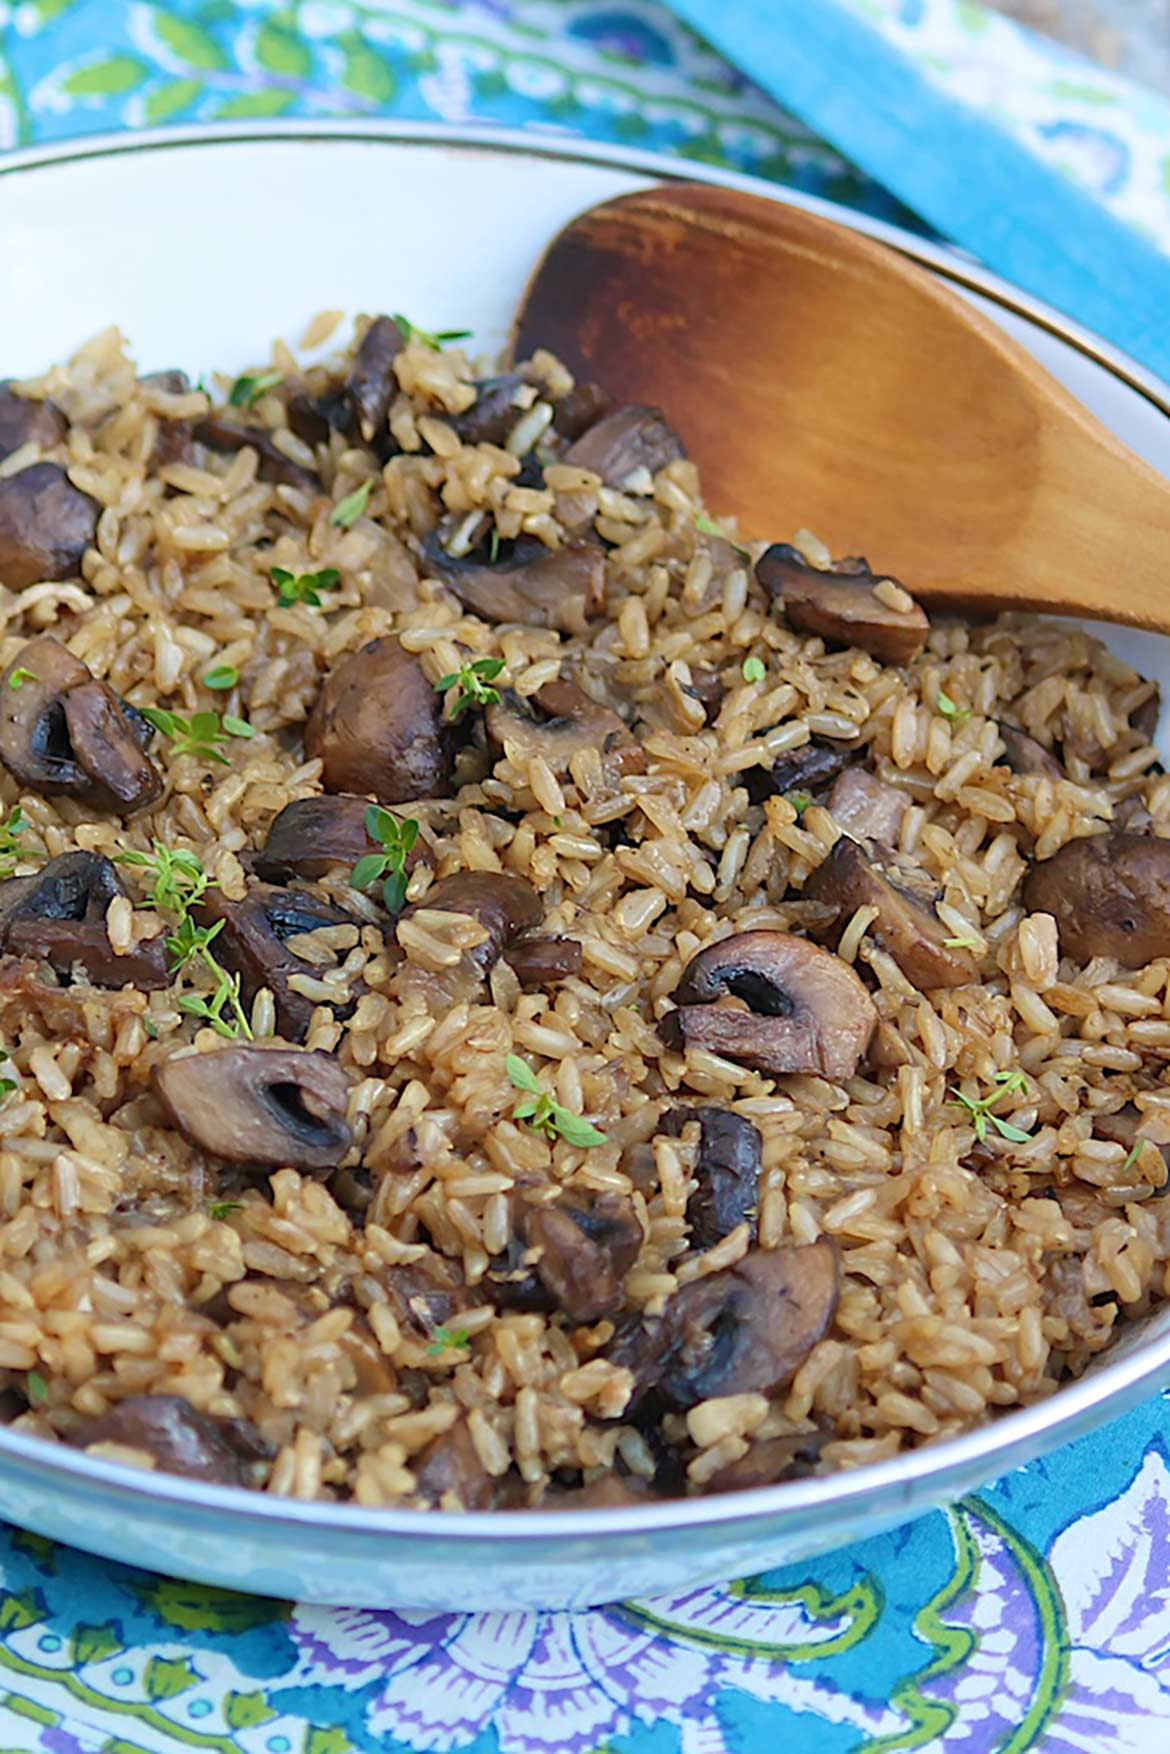 Earthy mushrooms and a few other convenient ingredients turn basic brown rice into a special side dish.